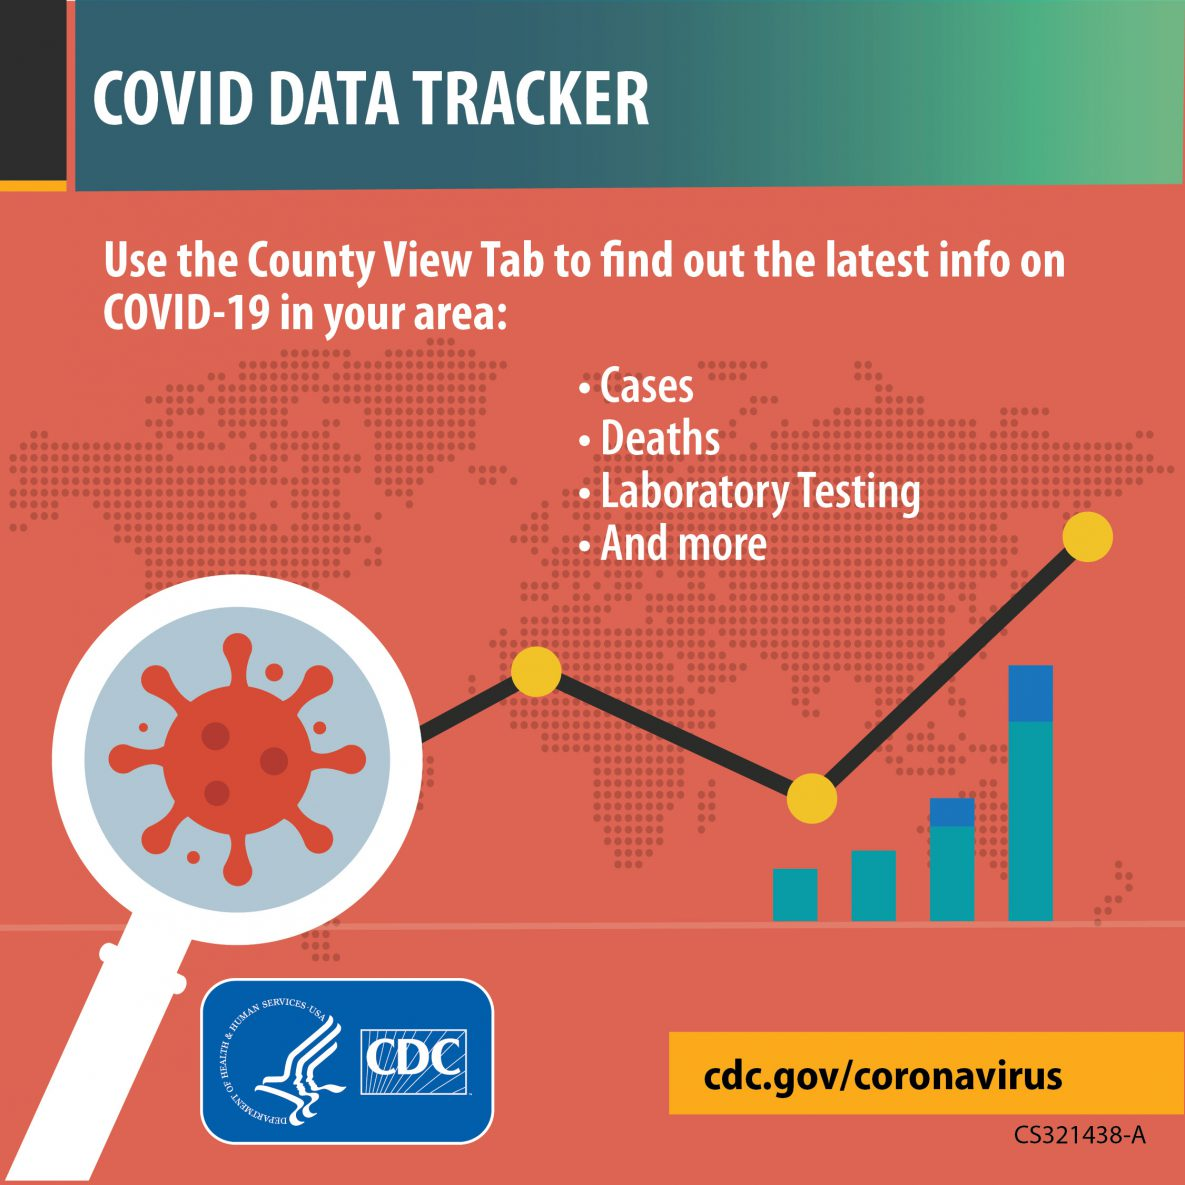 Image shows County View Tab as a source for county-level data.